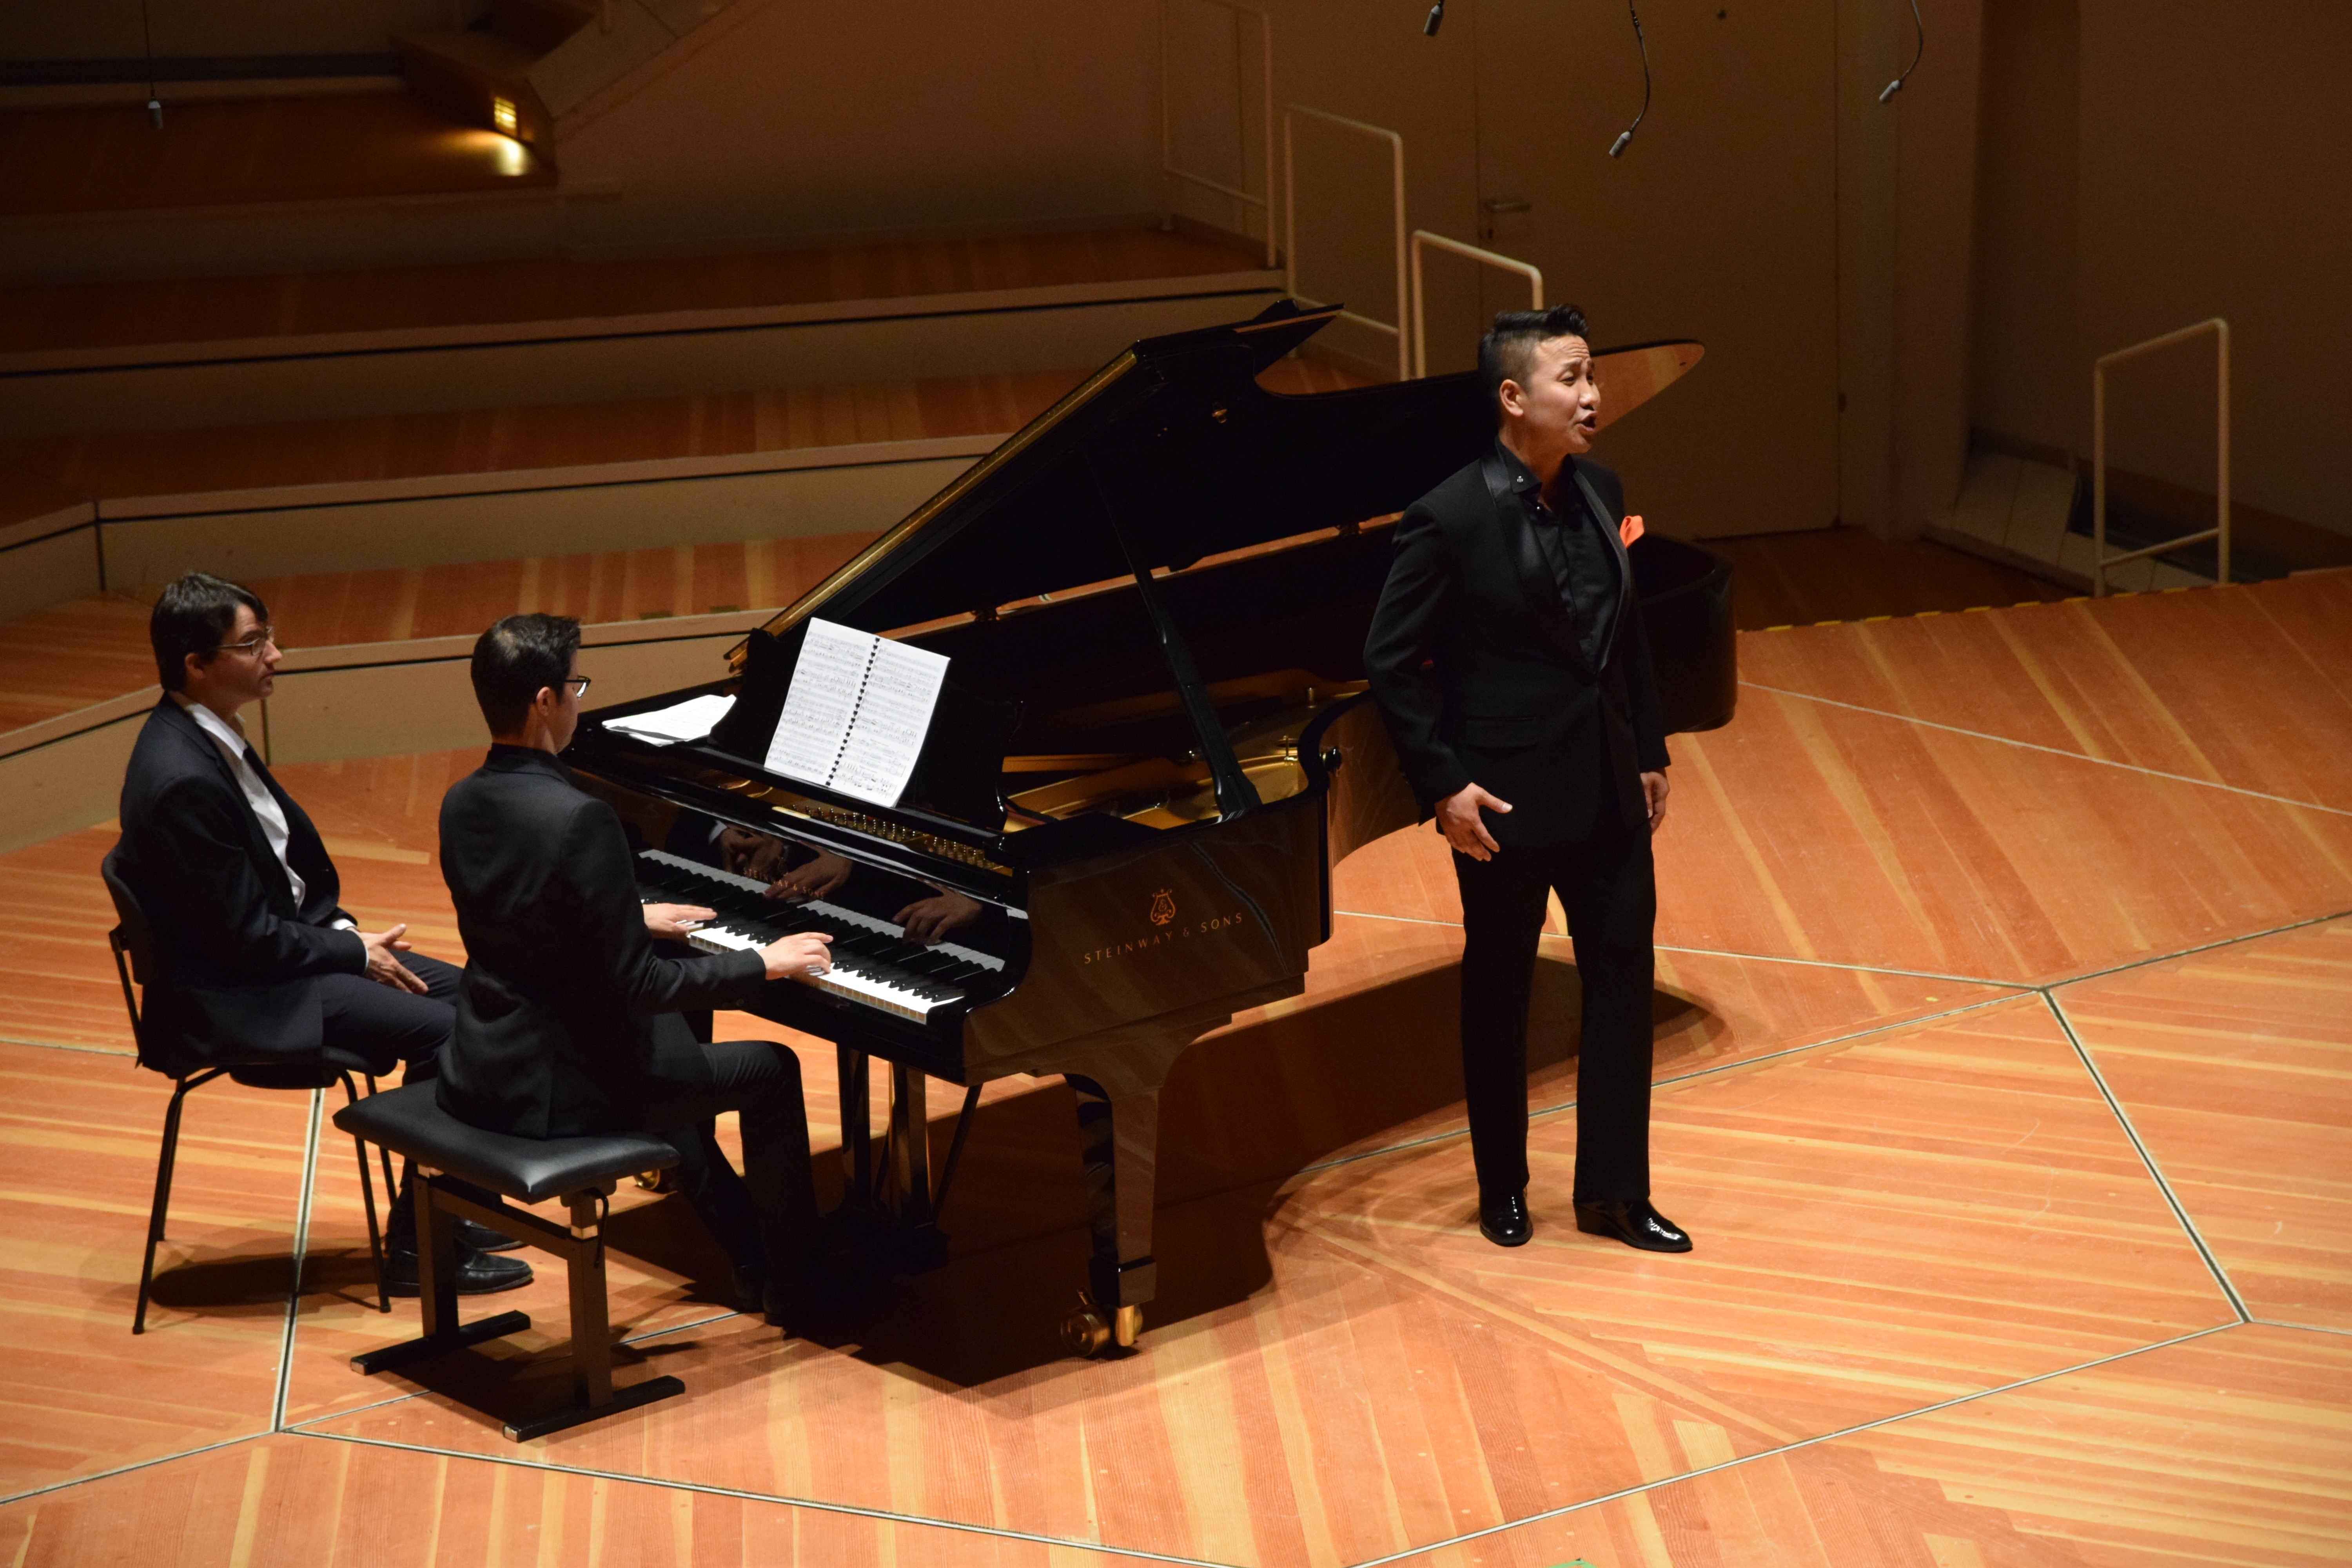 berliner music competition 19